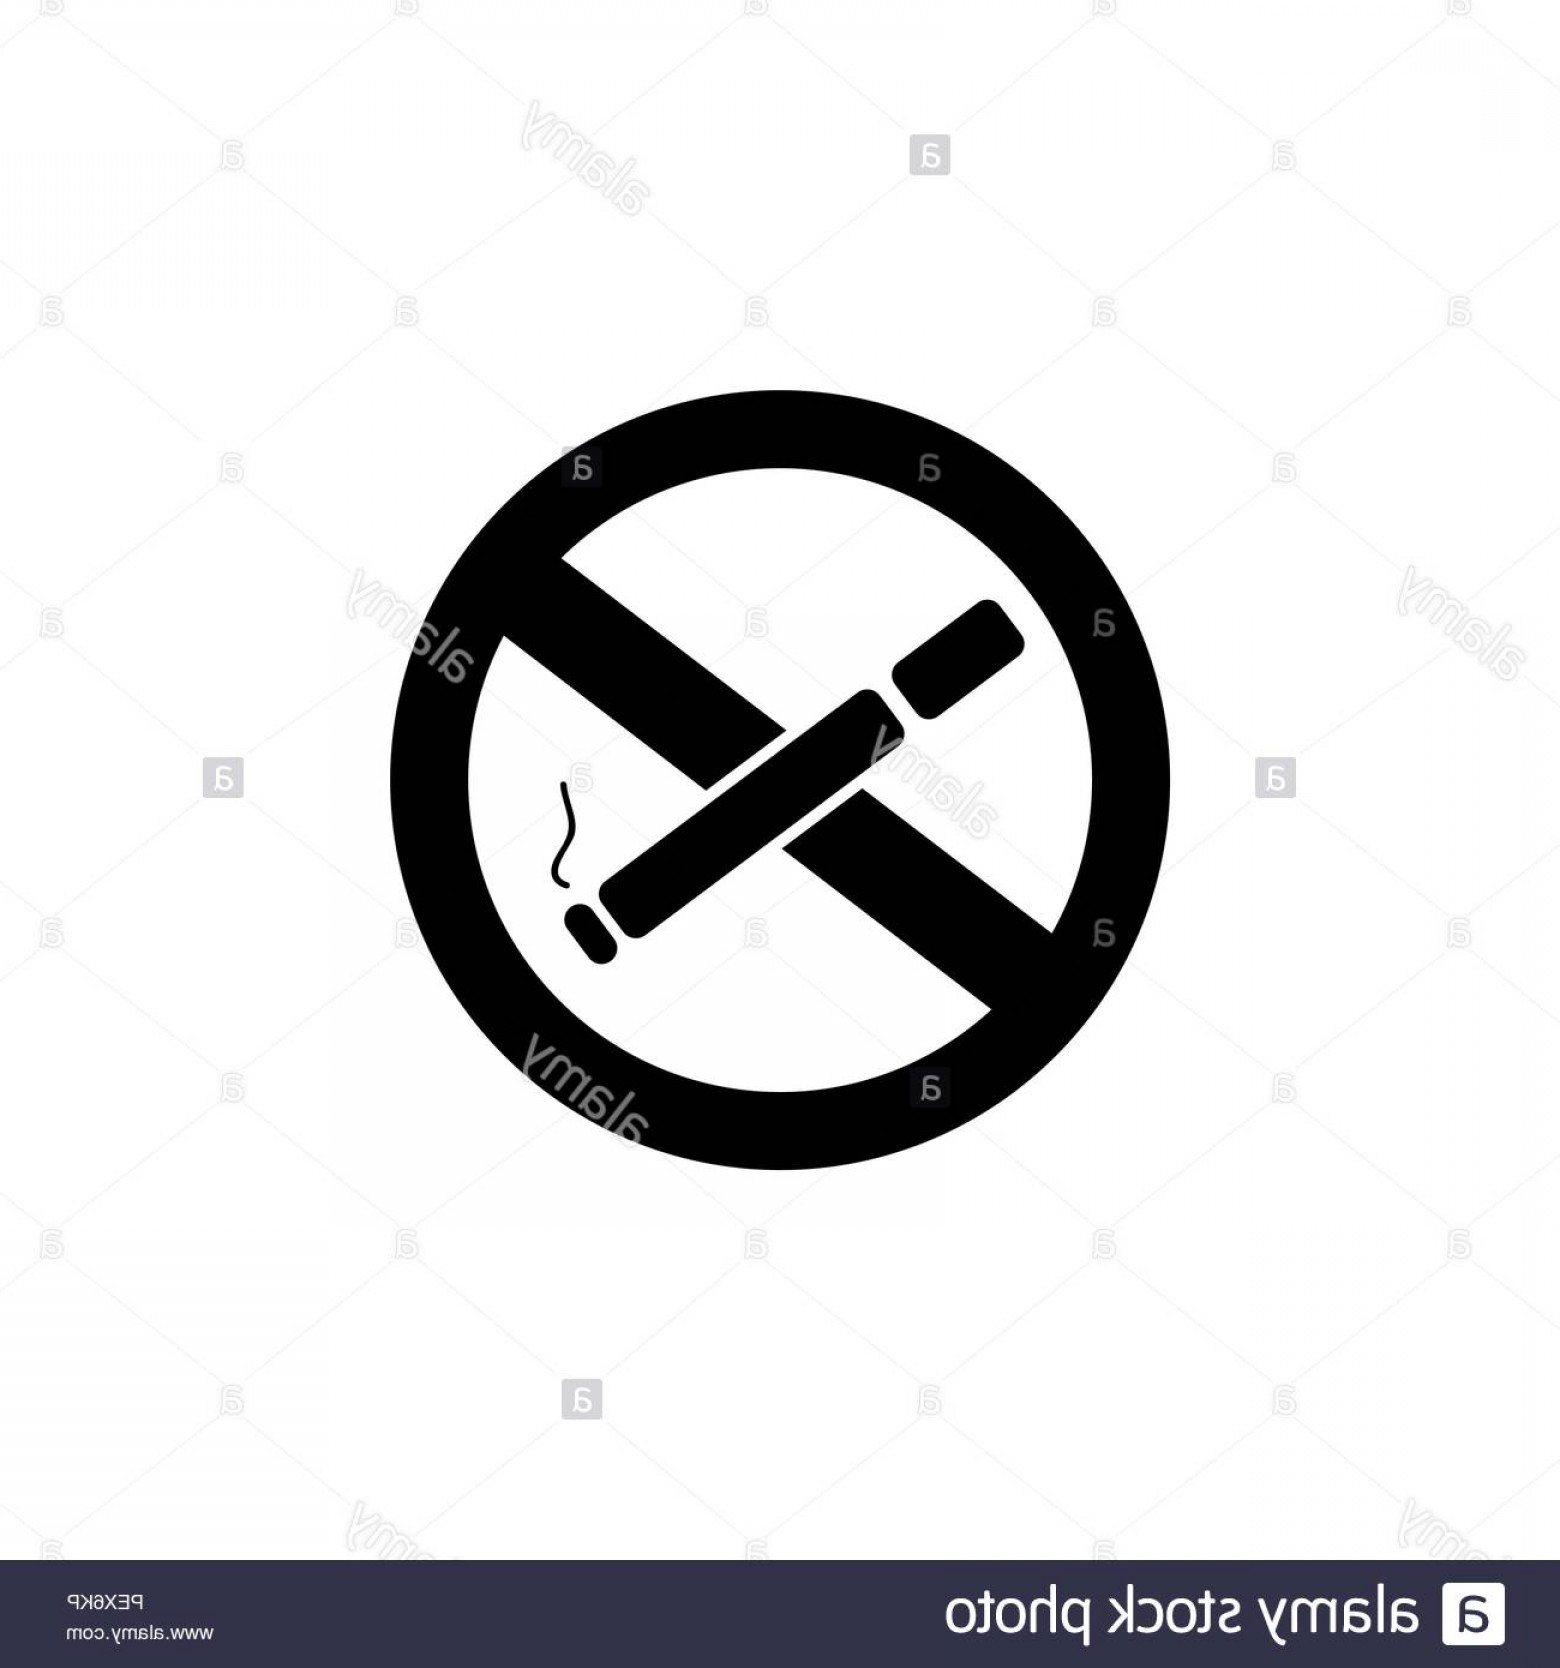 No Smoking Vector Art Black And White: No Smoking Sign Vector Black On White Background Image